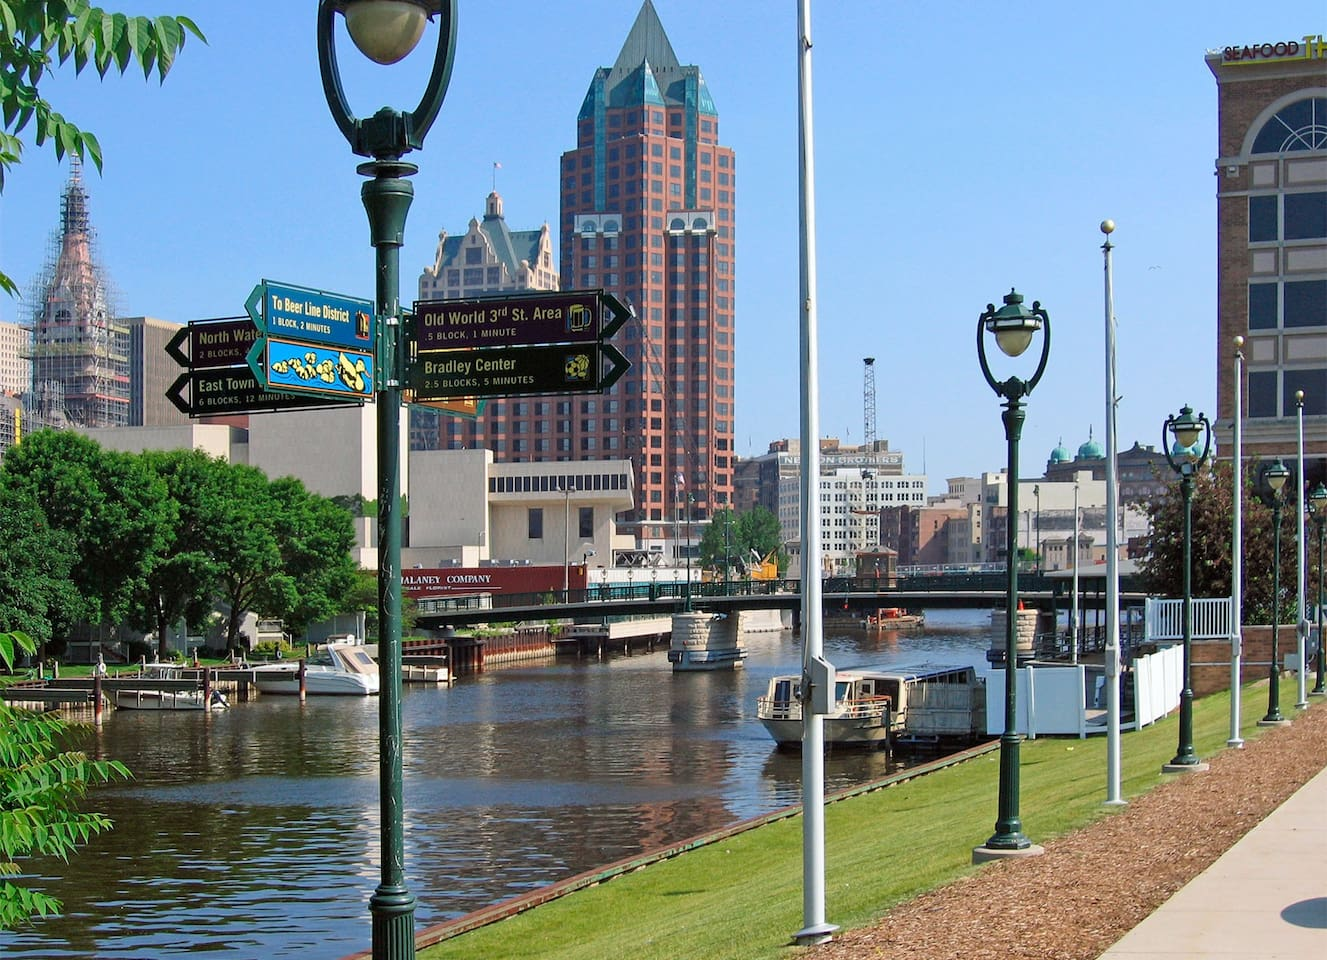 Stay In the heart of the city - walk to conventions, concerts, restaurants, festivals via the 3 mile Riverwalk - steps outside your door!